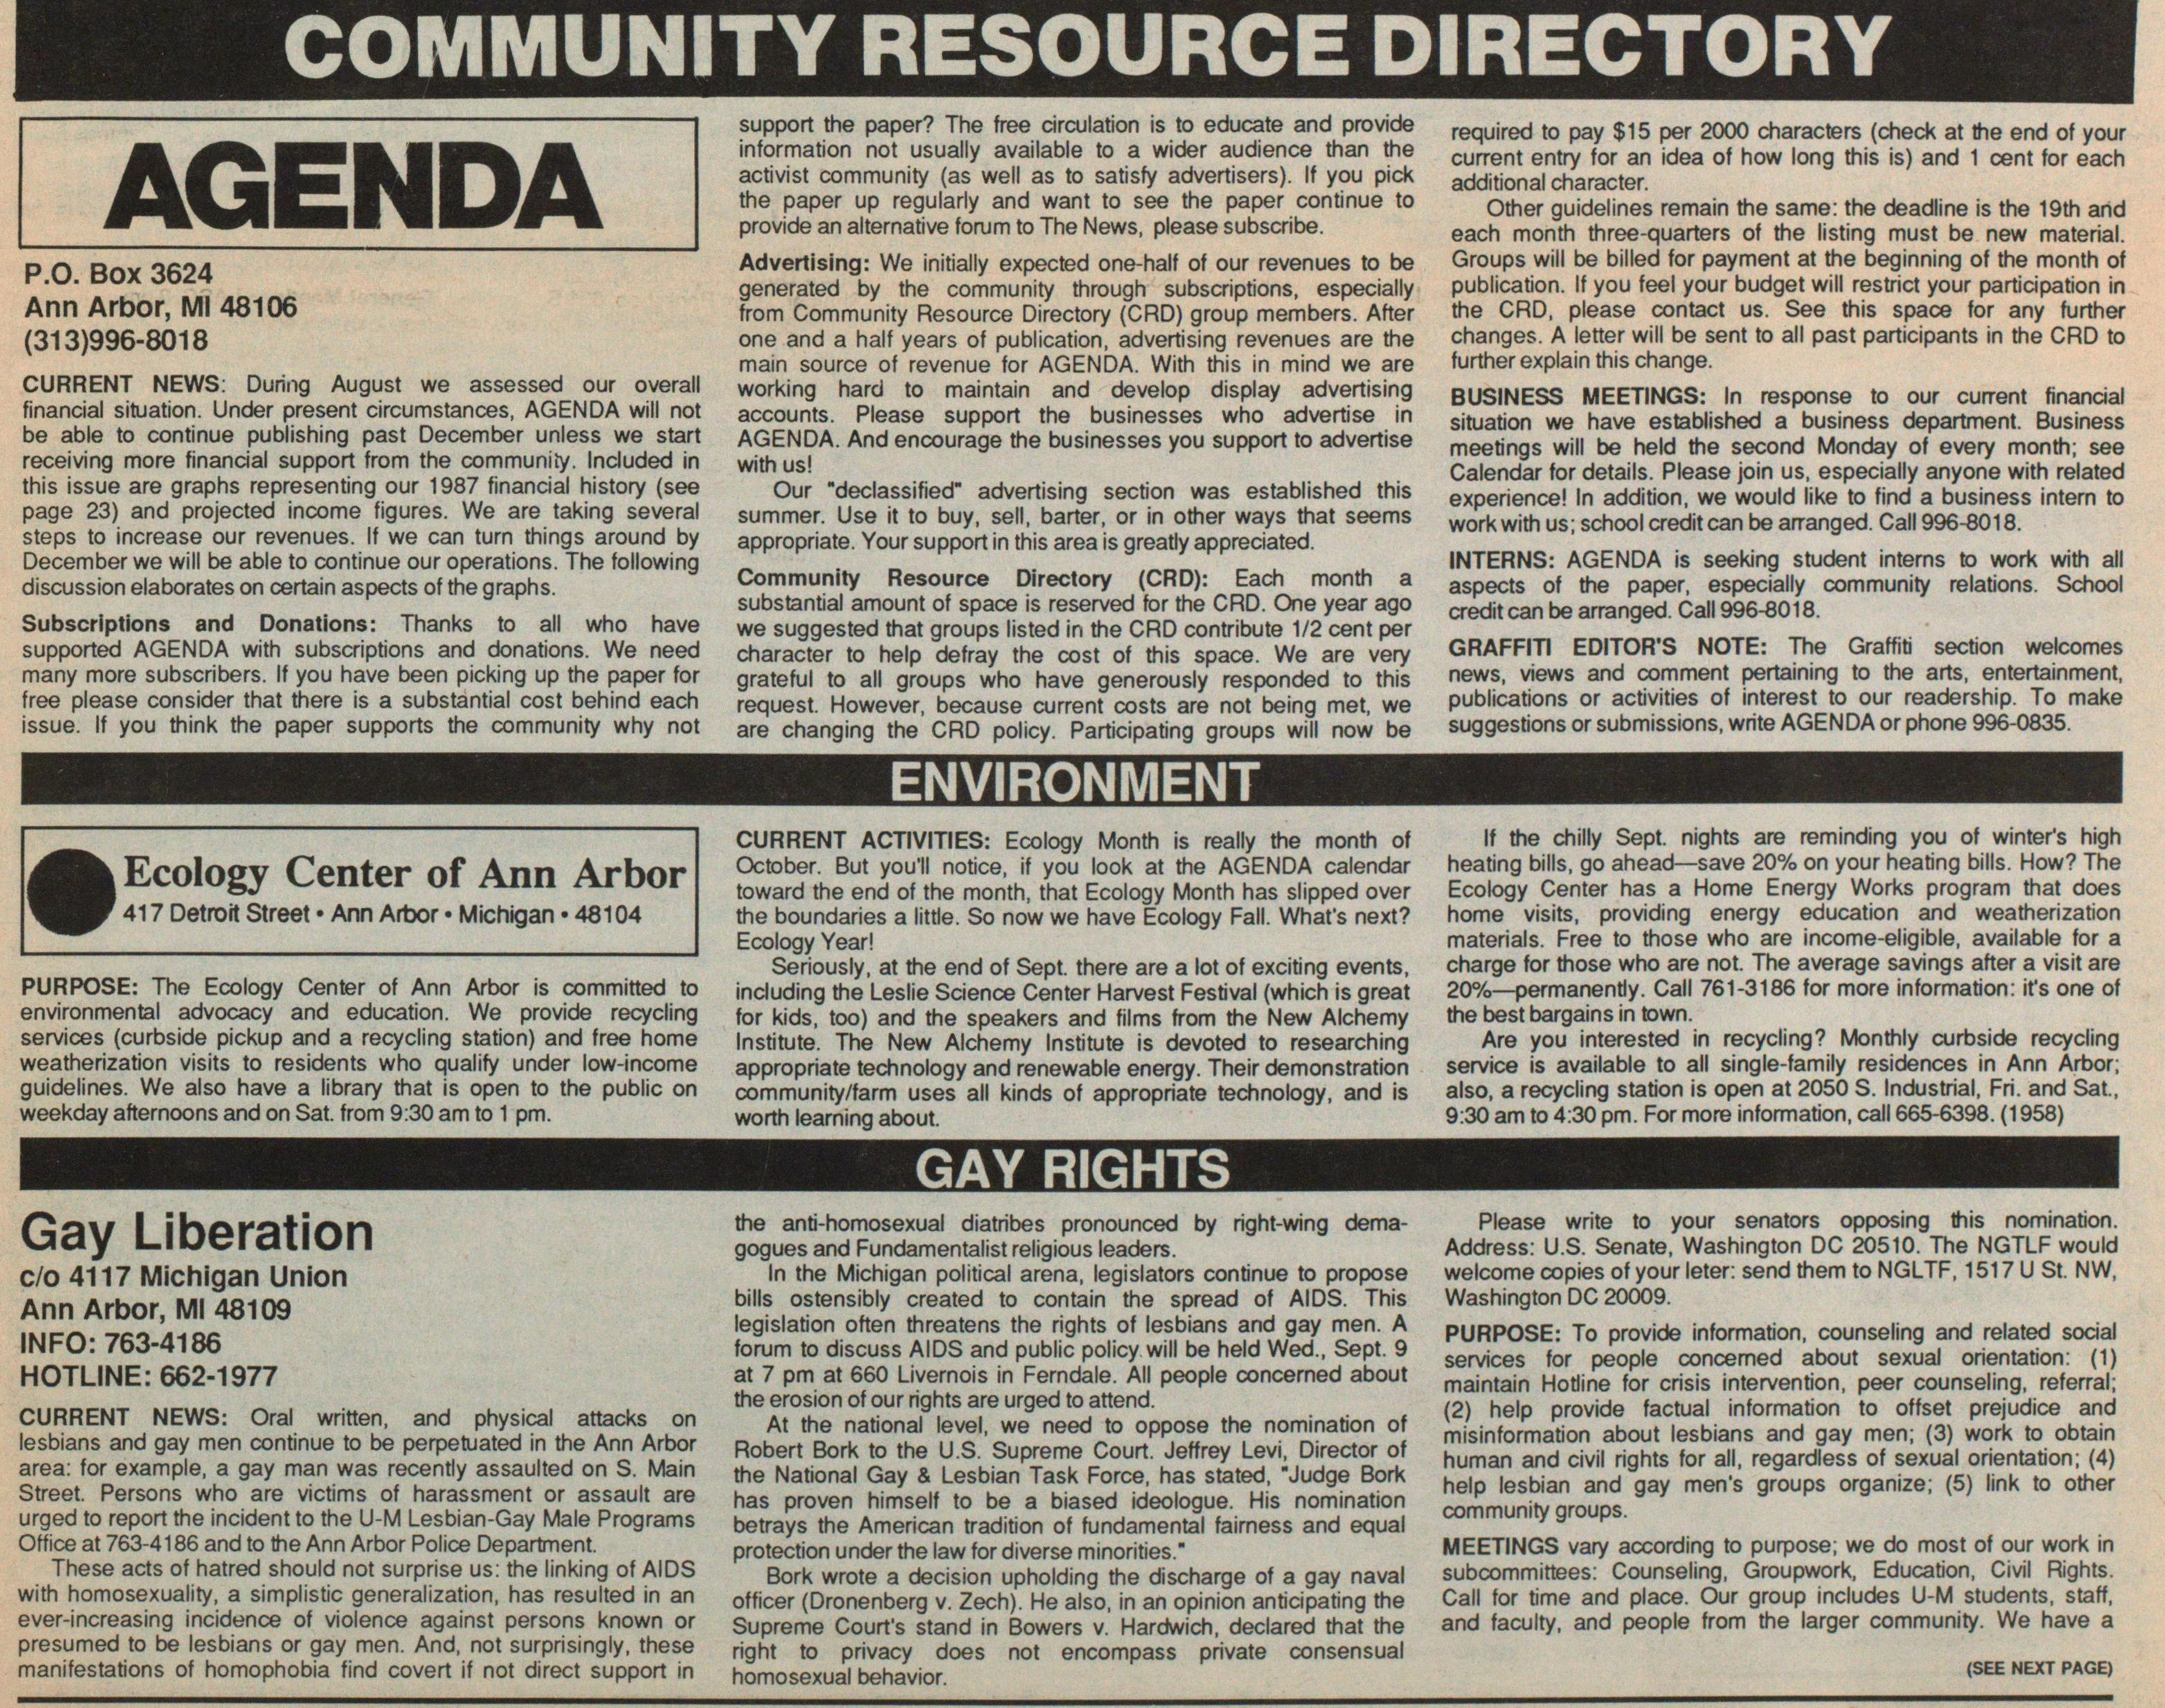 Community Resource Directory image